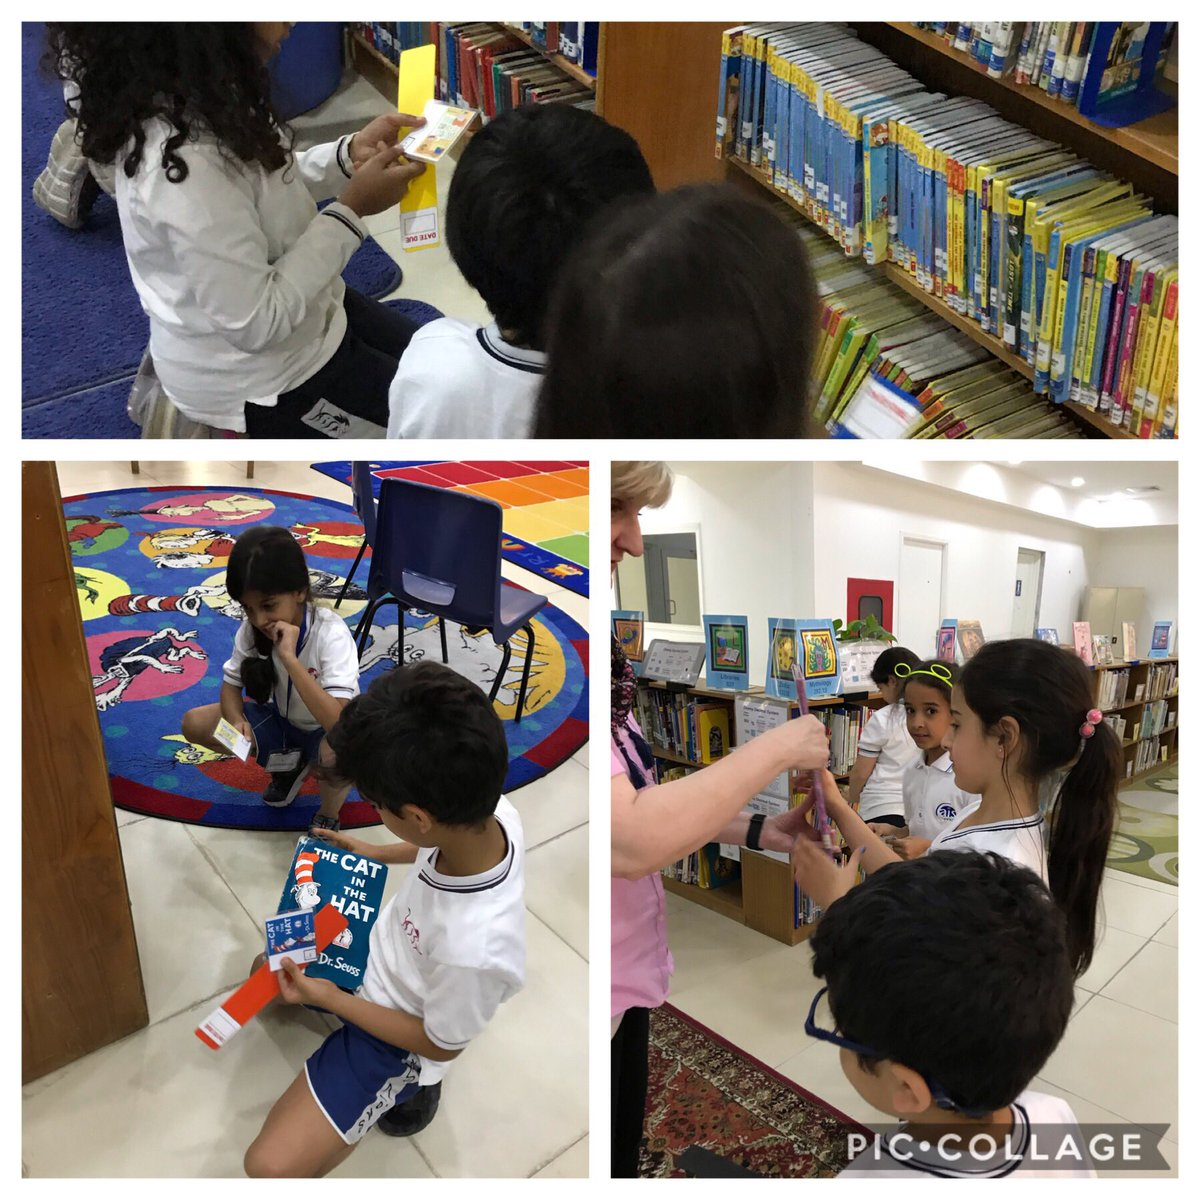 G2 students using their knowledge of call numbers to find hidden books. #aisq8 #callnumbers